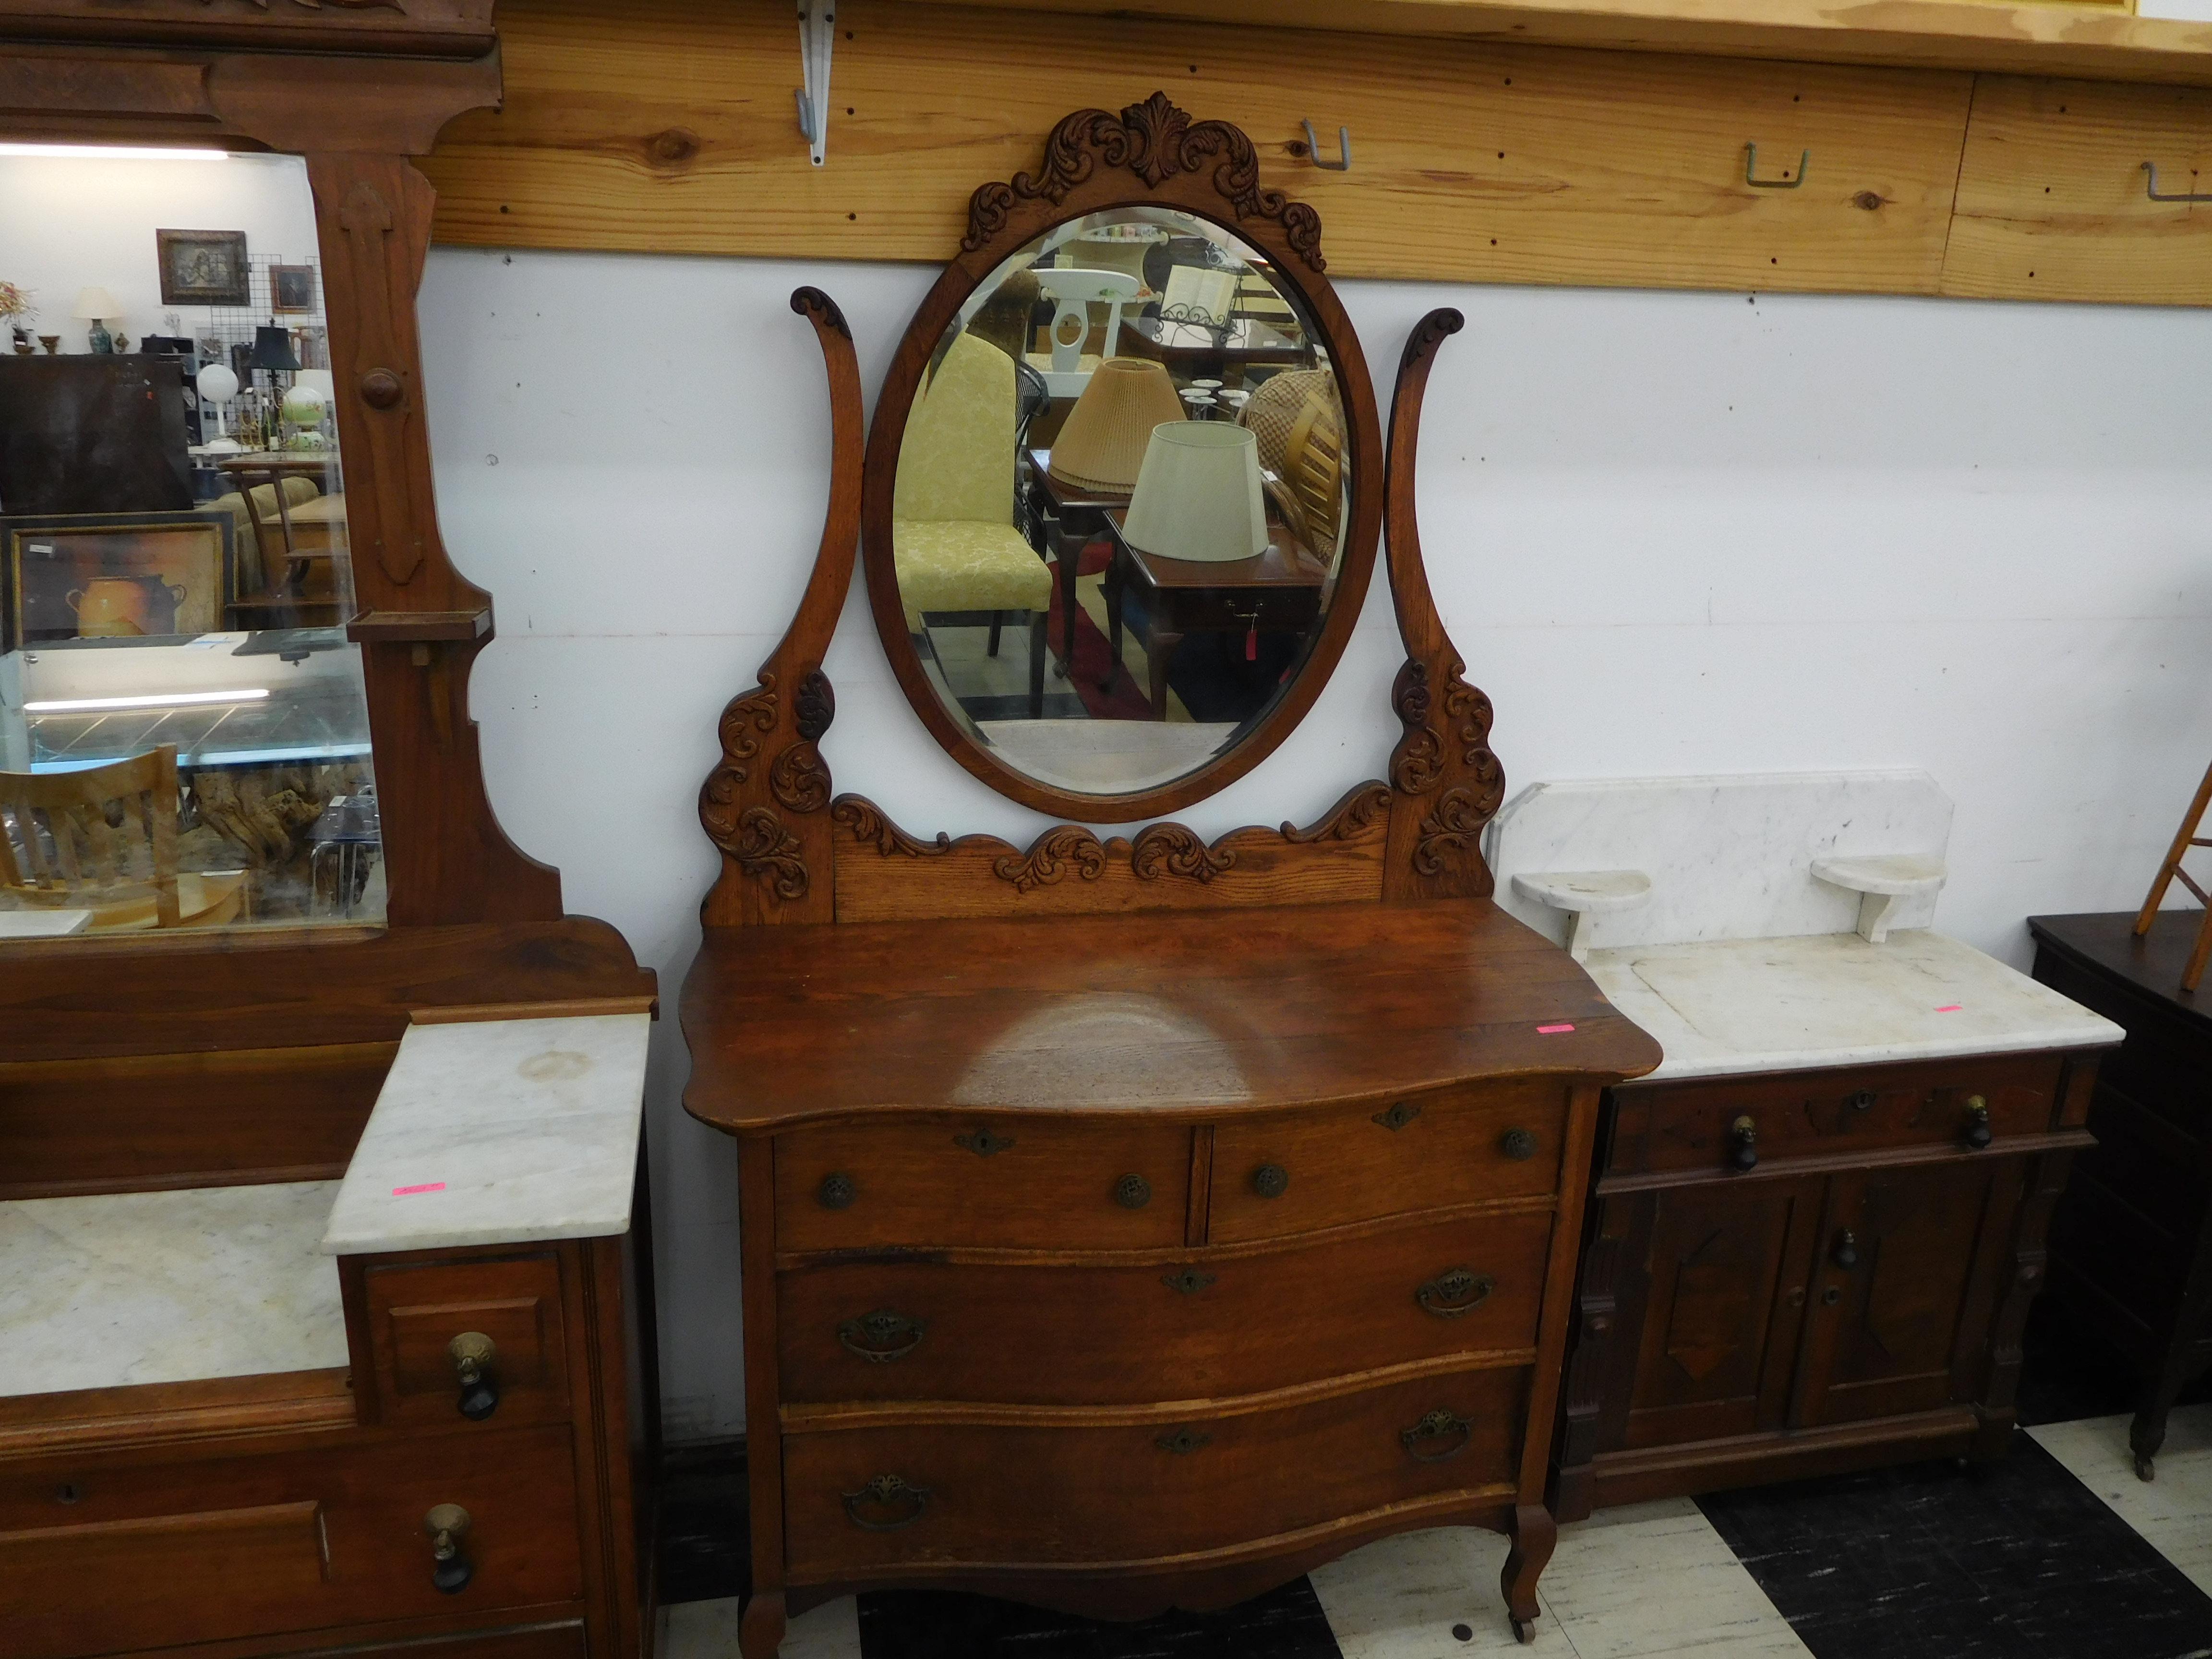 Beautifully Carved Antique Washstand with Mirror